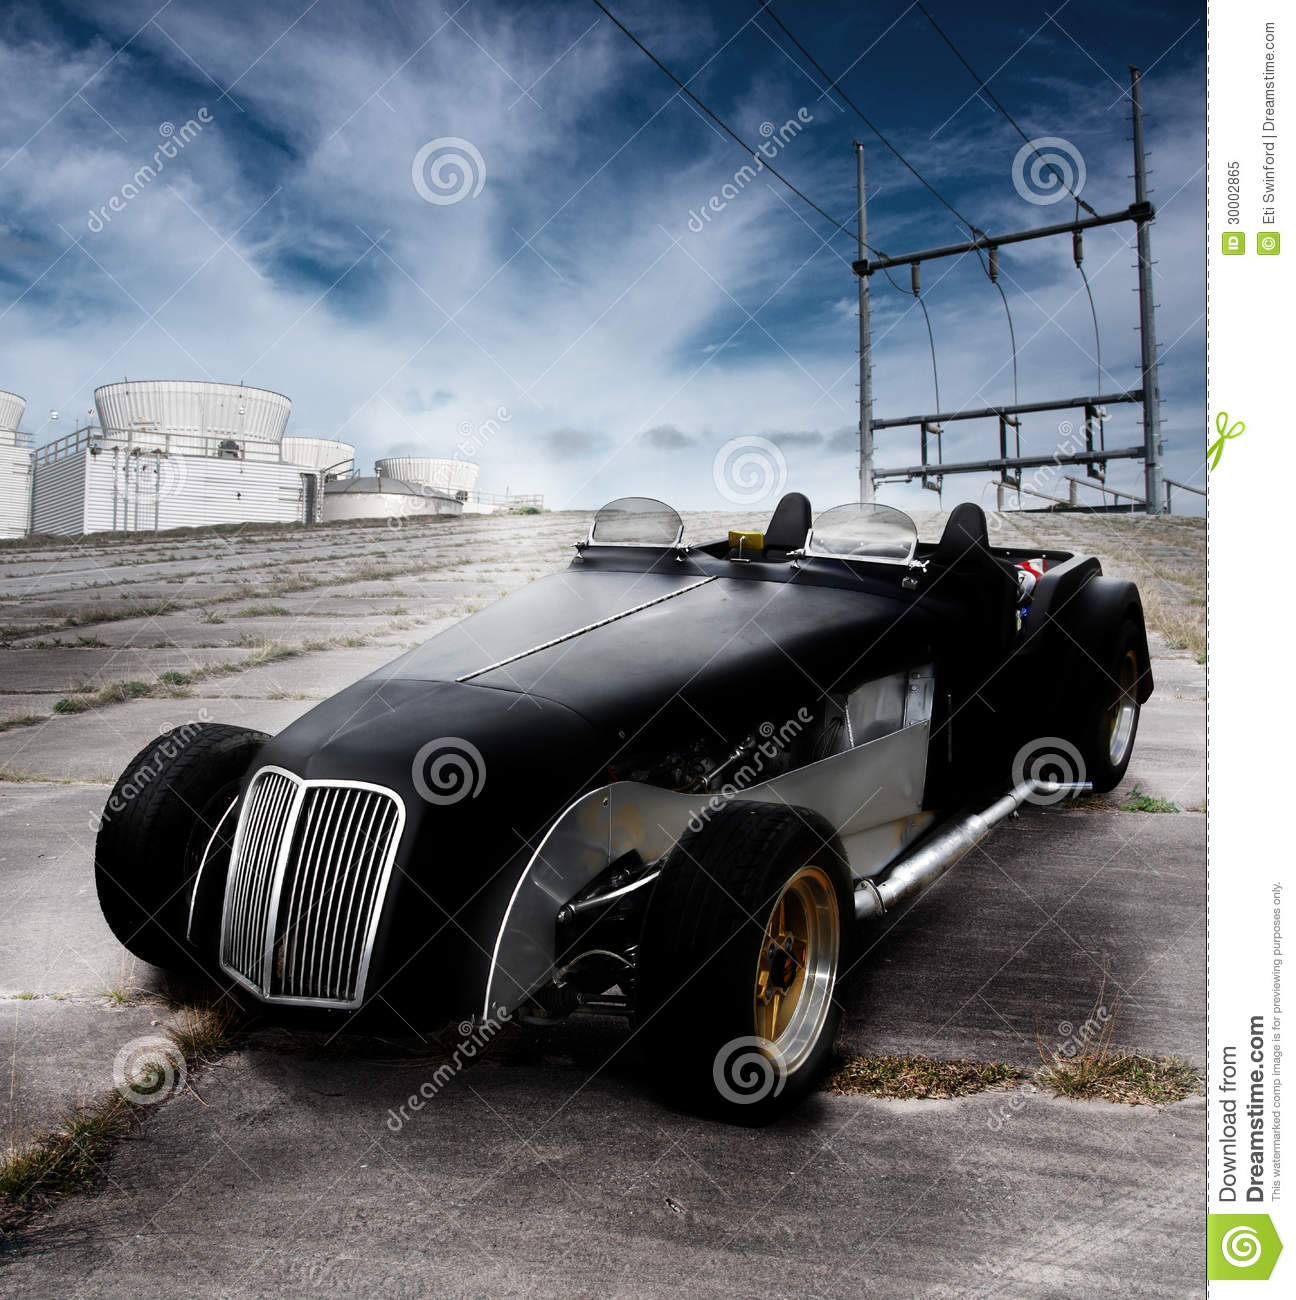 Car Roadster Classic Stock Image. Image Of Sports, Roadway